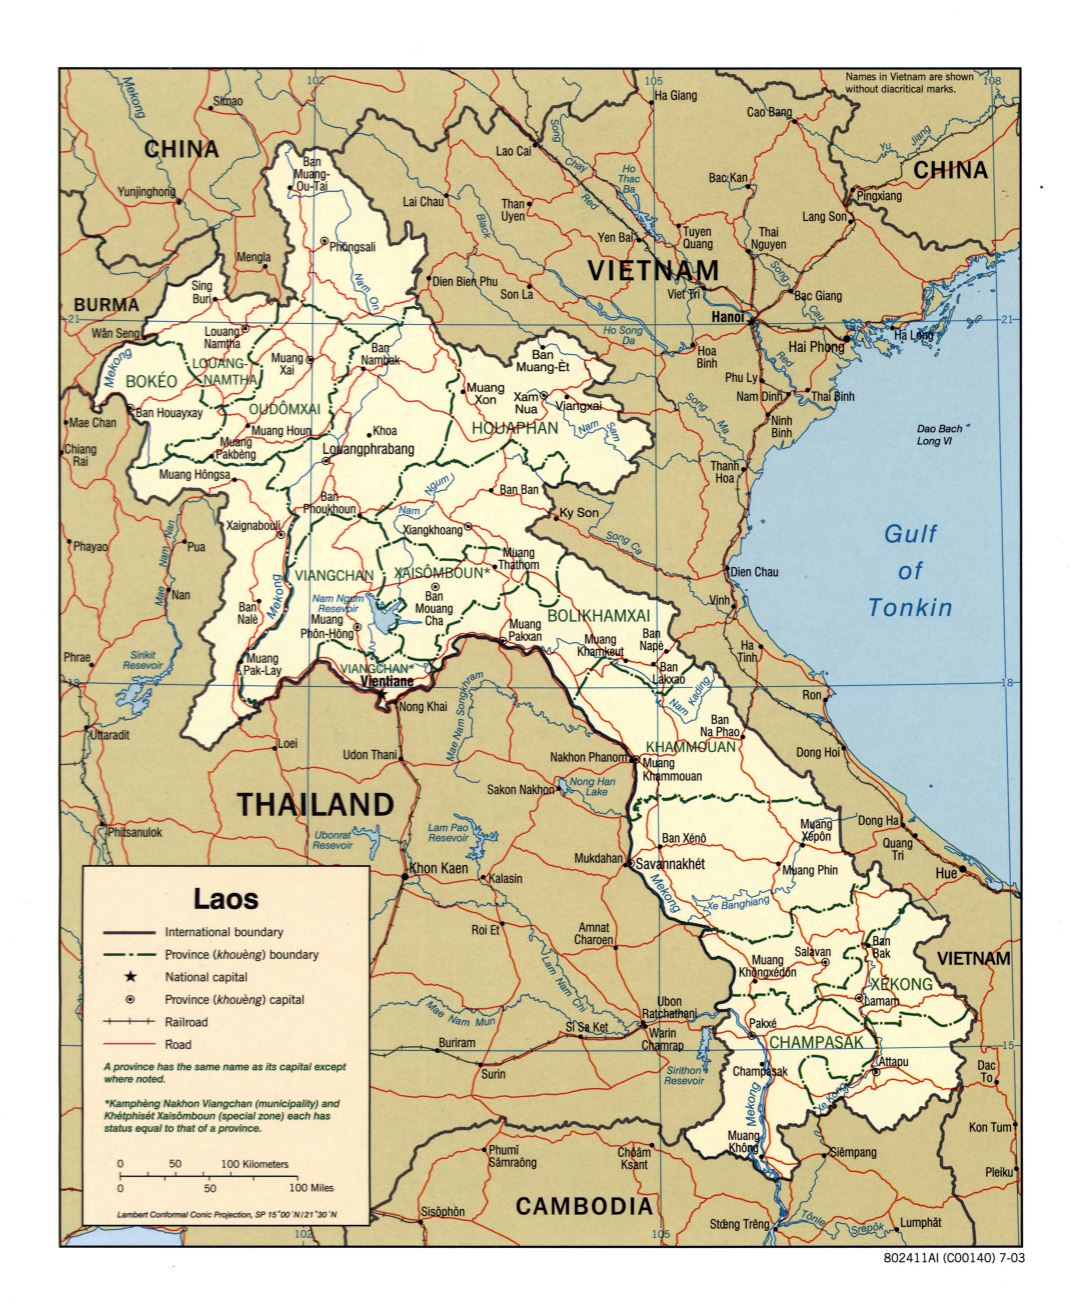 Large scale political and administrative map of Laos with roads, railroads and major cities - 2003